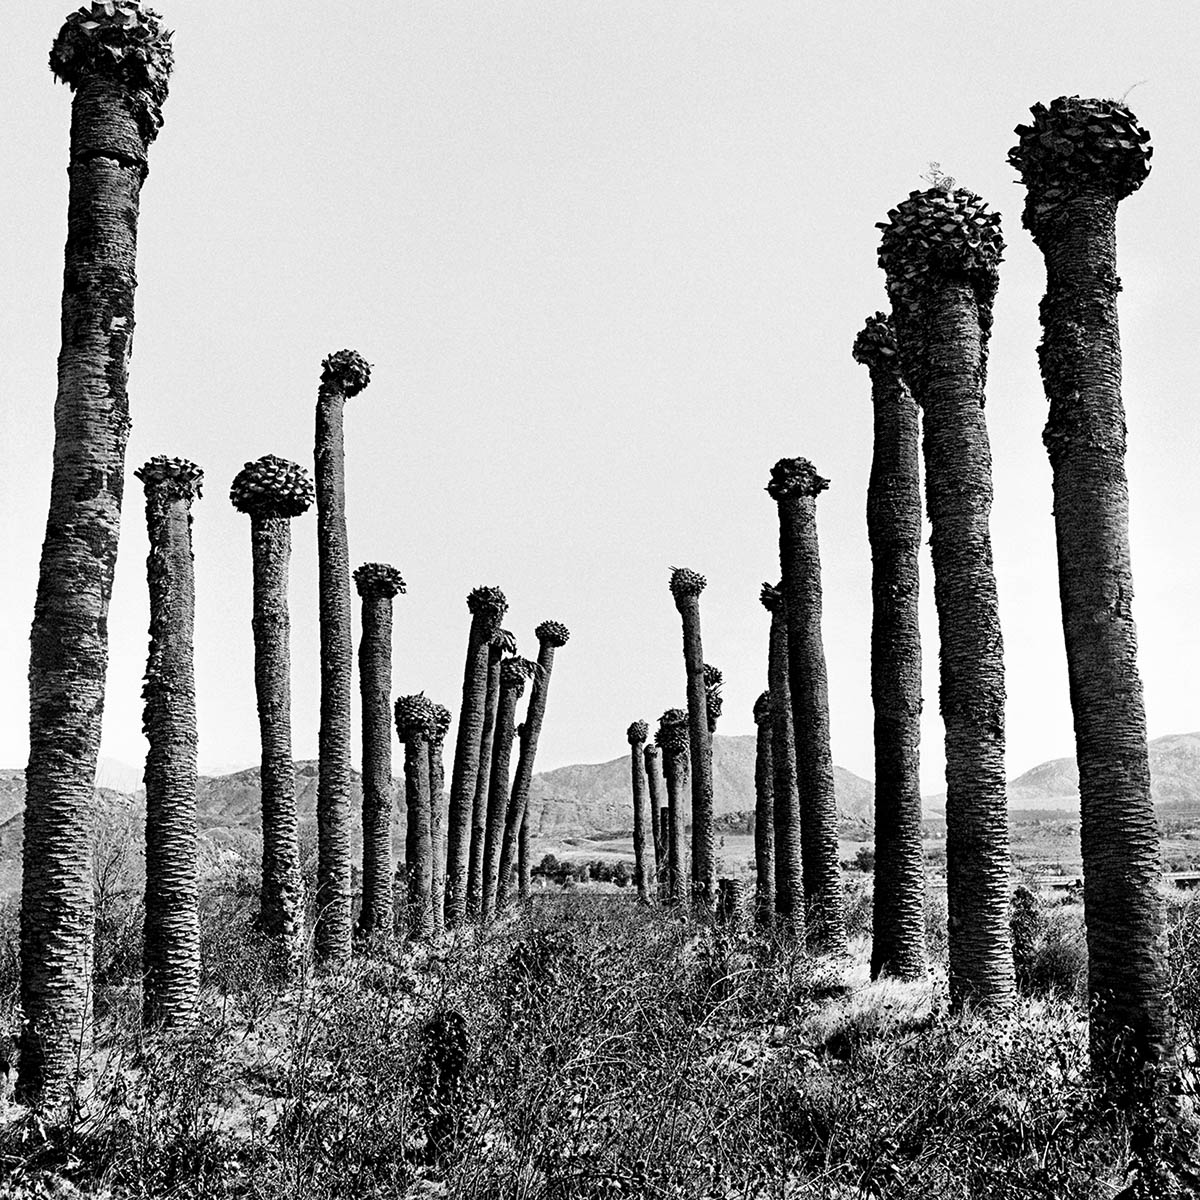 Abandoned Industrial Park, Colten, California, 1995